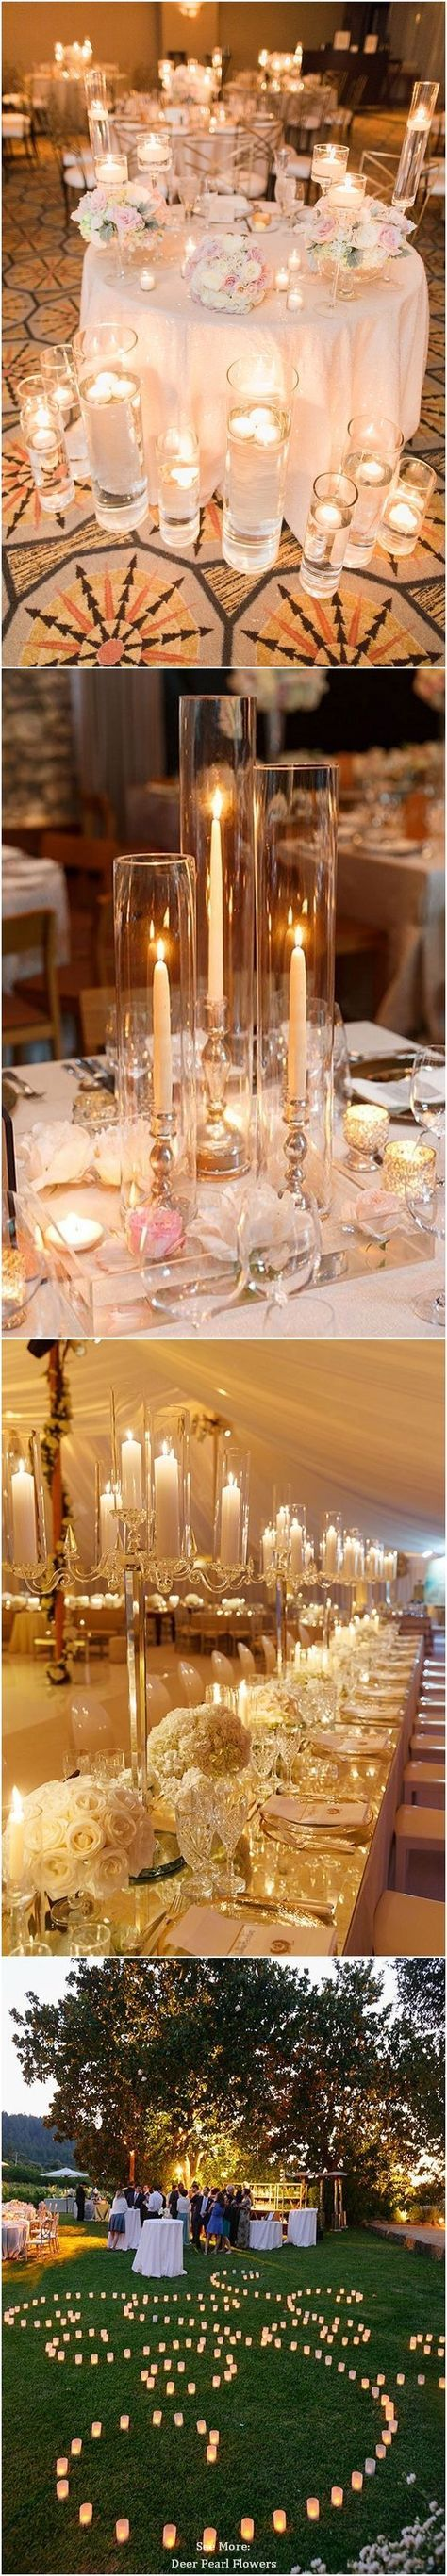 57 best 2018 wedding trends images on pinterest 2018 wedding 40 chic romantic wedding ideas using candles junglespirit Image collections